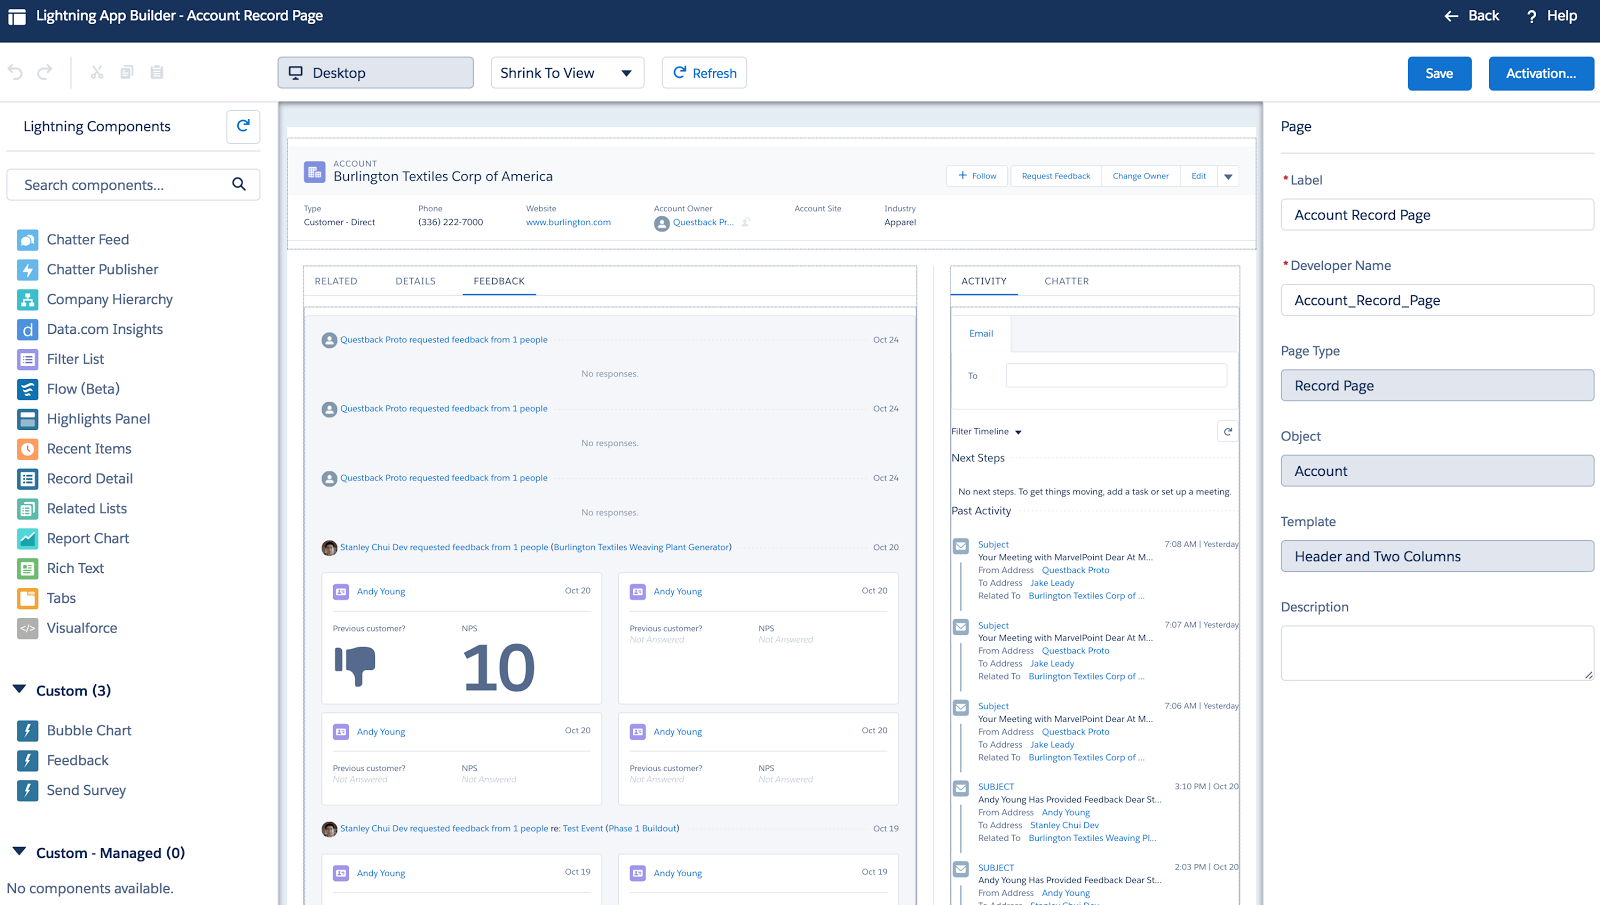 Getting Started with Salesforce Lightning Development